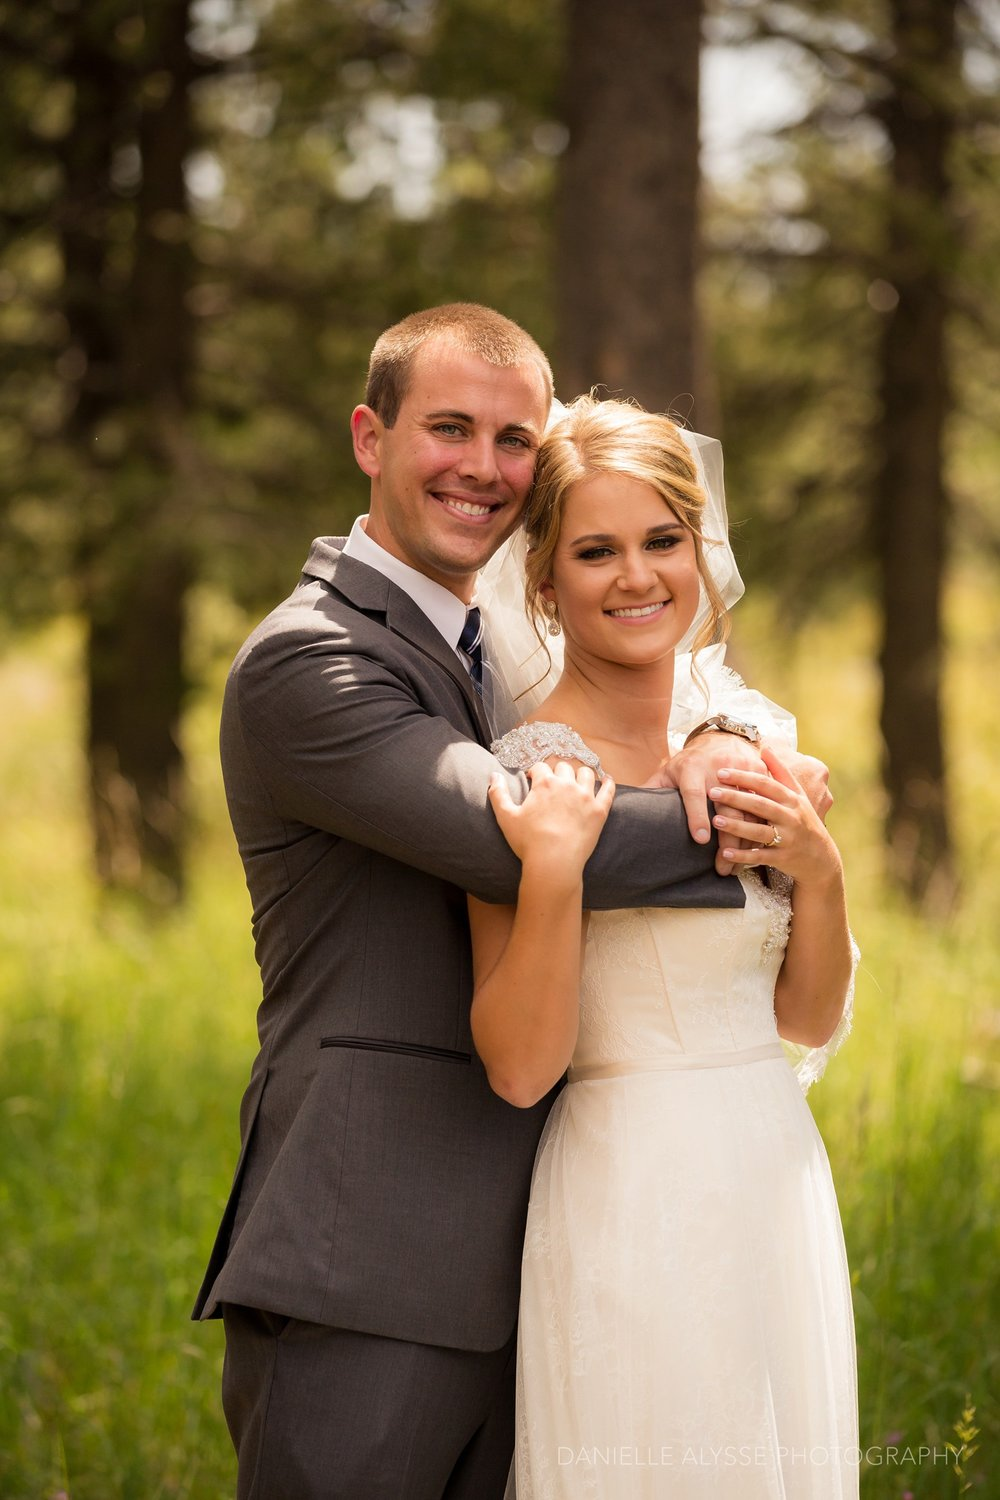 170819_blog_leslie_jeremy_wedding_bear_valley_lodge_arnold_danielle_alysse_photography_sacramento_photographer_deliver253_WEB.jpg